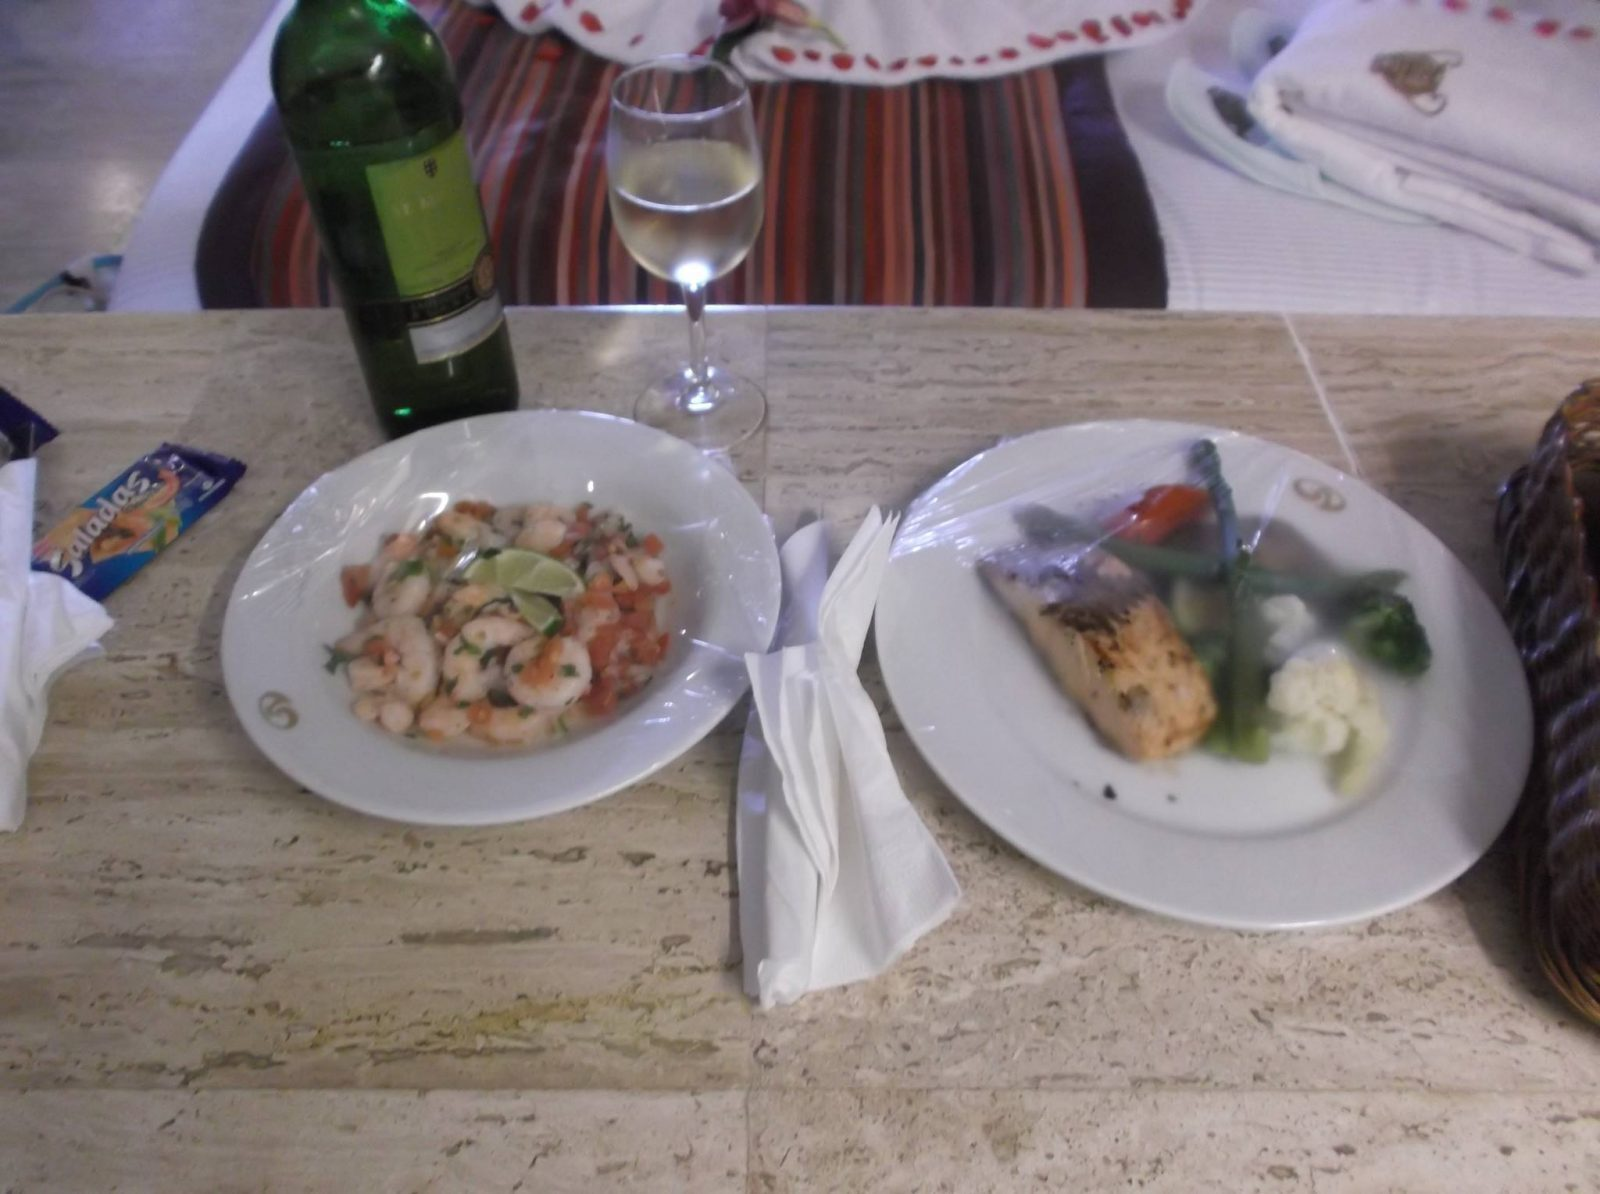 Rooms service in RSY (Cerviche & salmon)